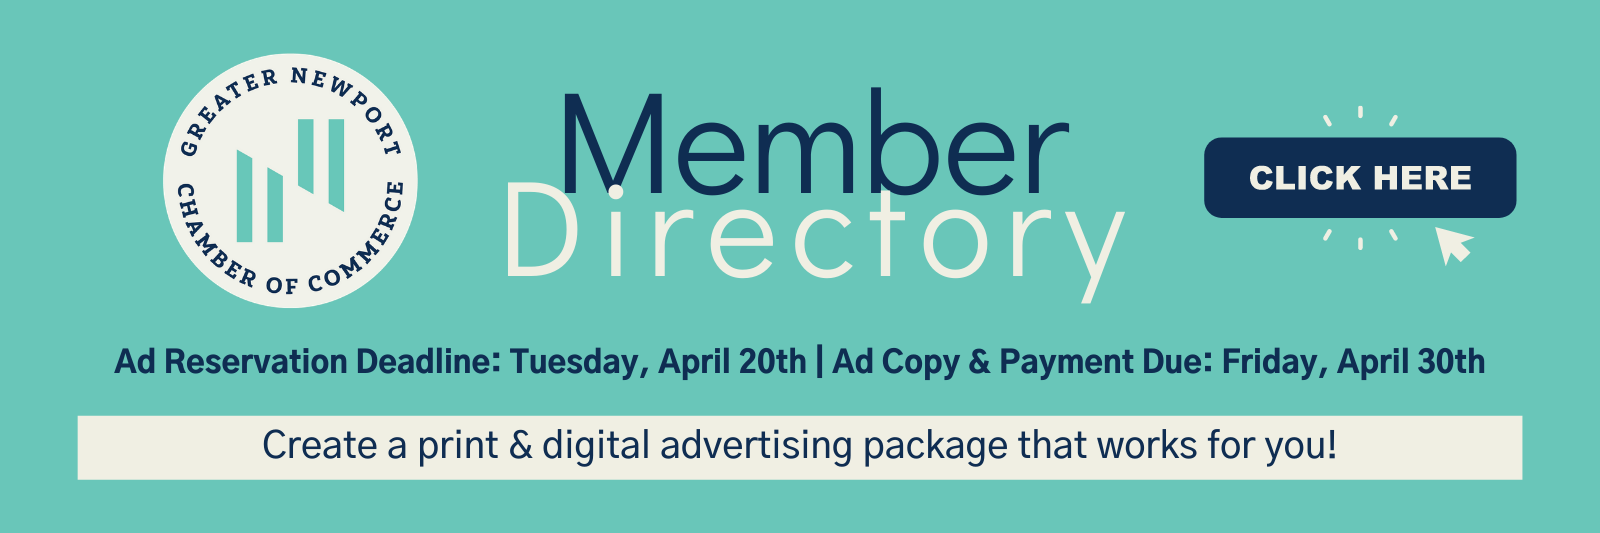 Advertise-in-our-Member-Directory.png